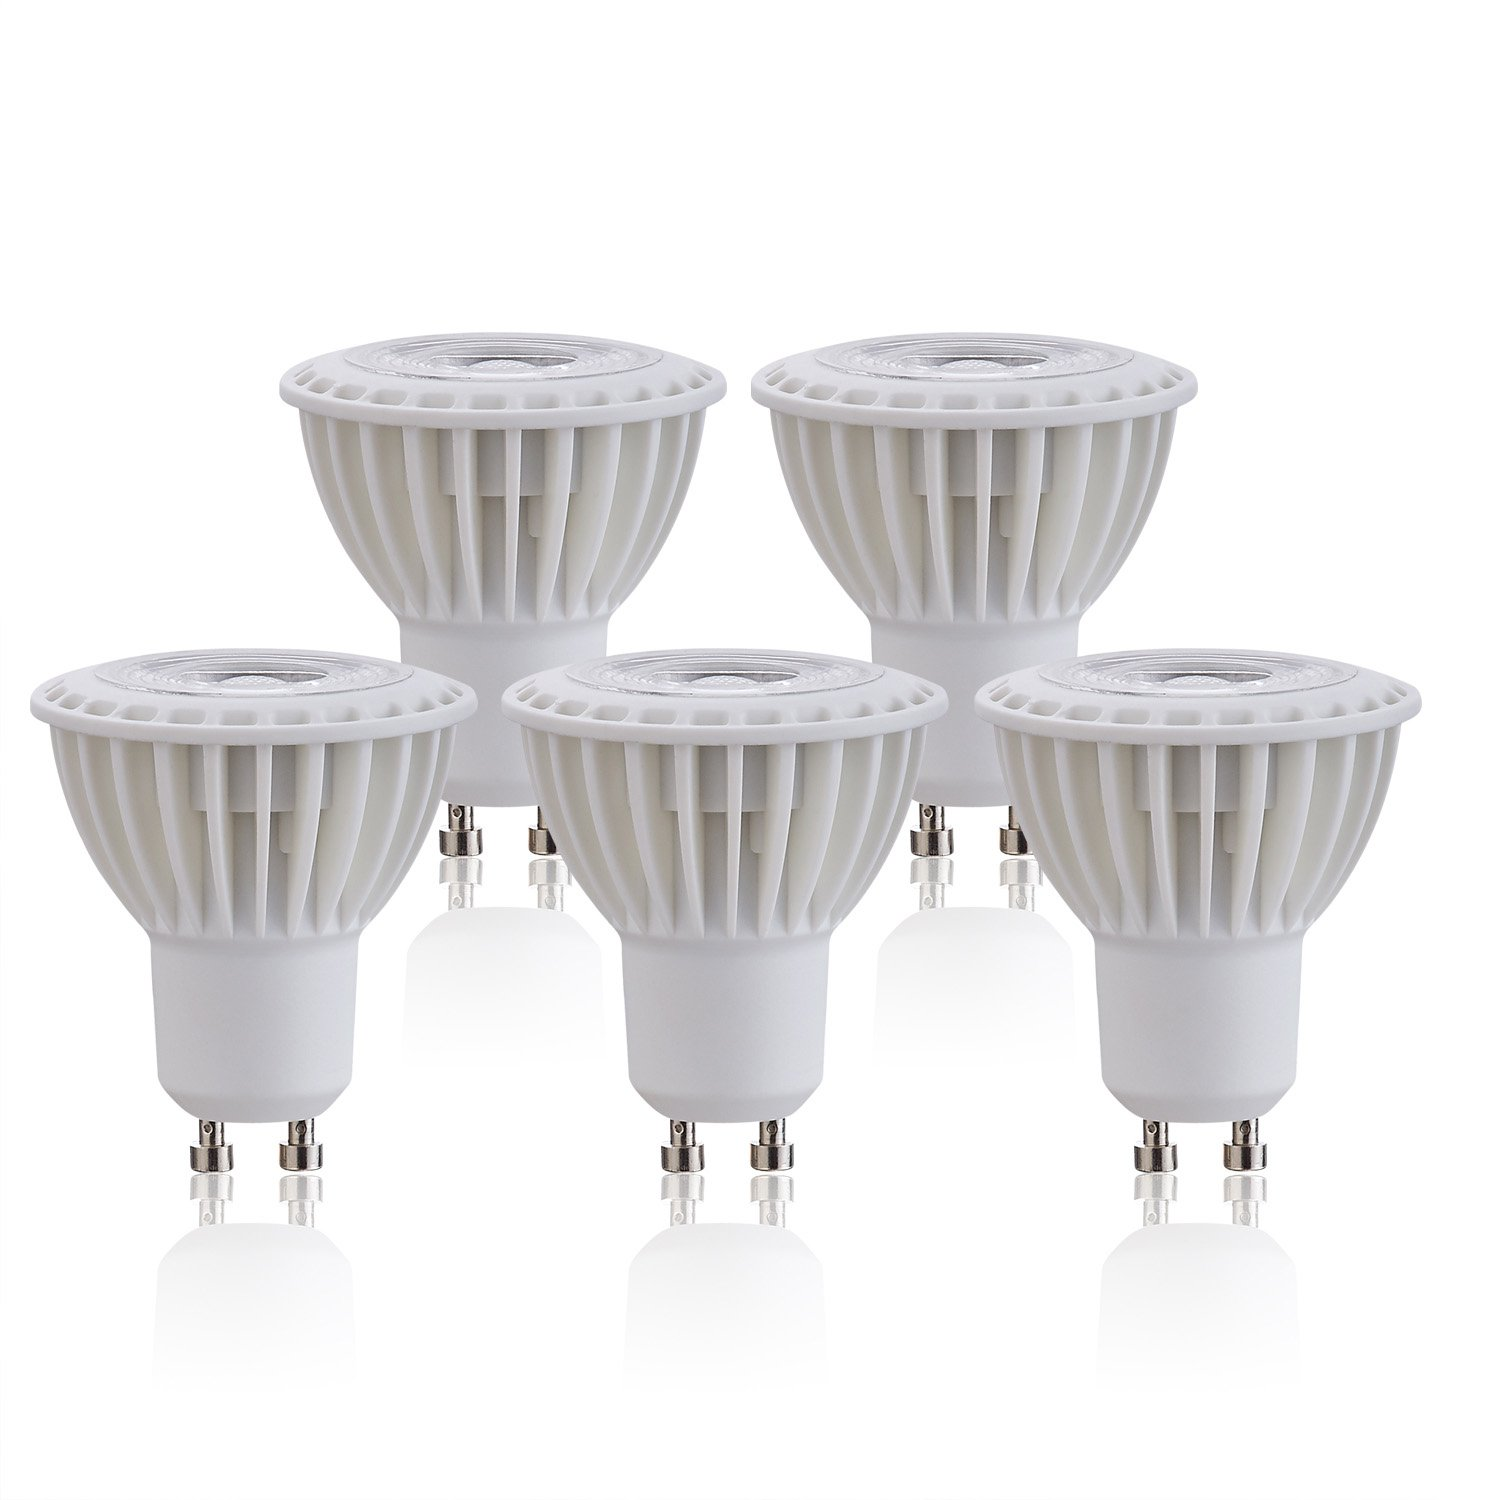 (5 Pack)Daylight White 5000K 3W Led Bulb siliconcontrolled Dimmable GU10 Base 40w Equivalent, Recessed Lighting,LED spotlight, 270lm,Led decorative Light